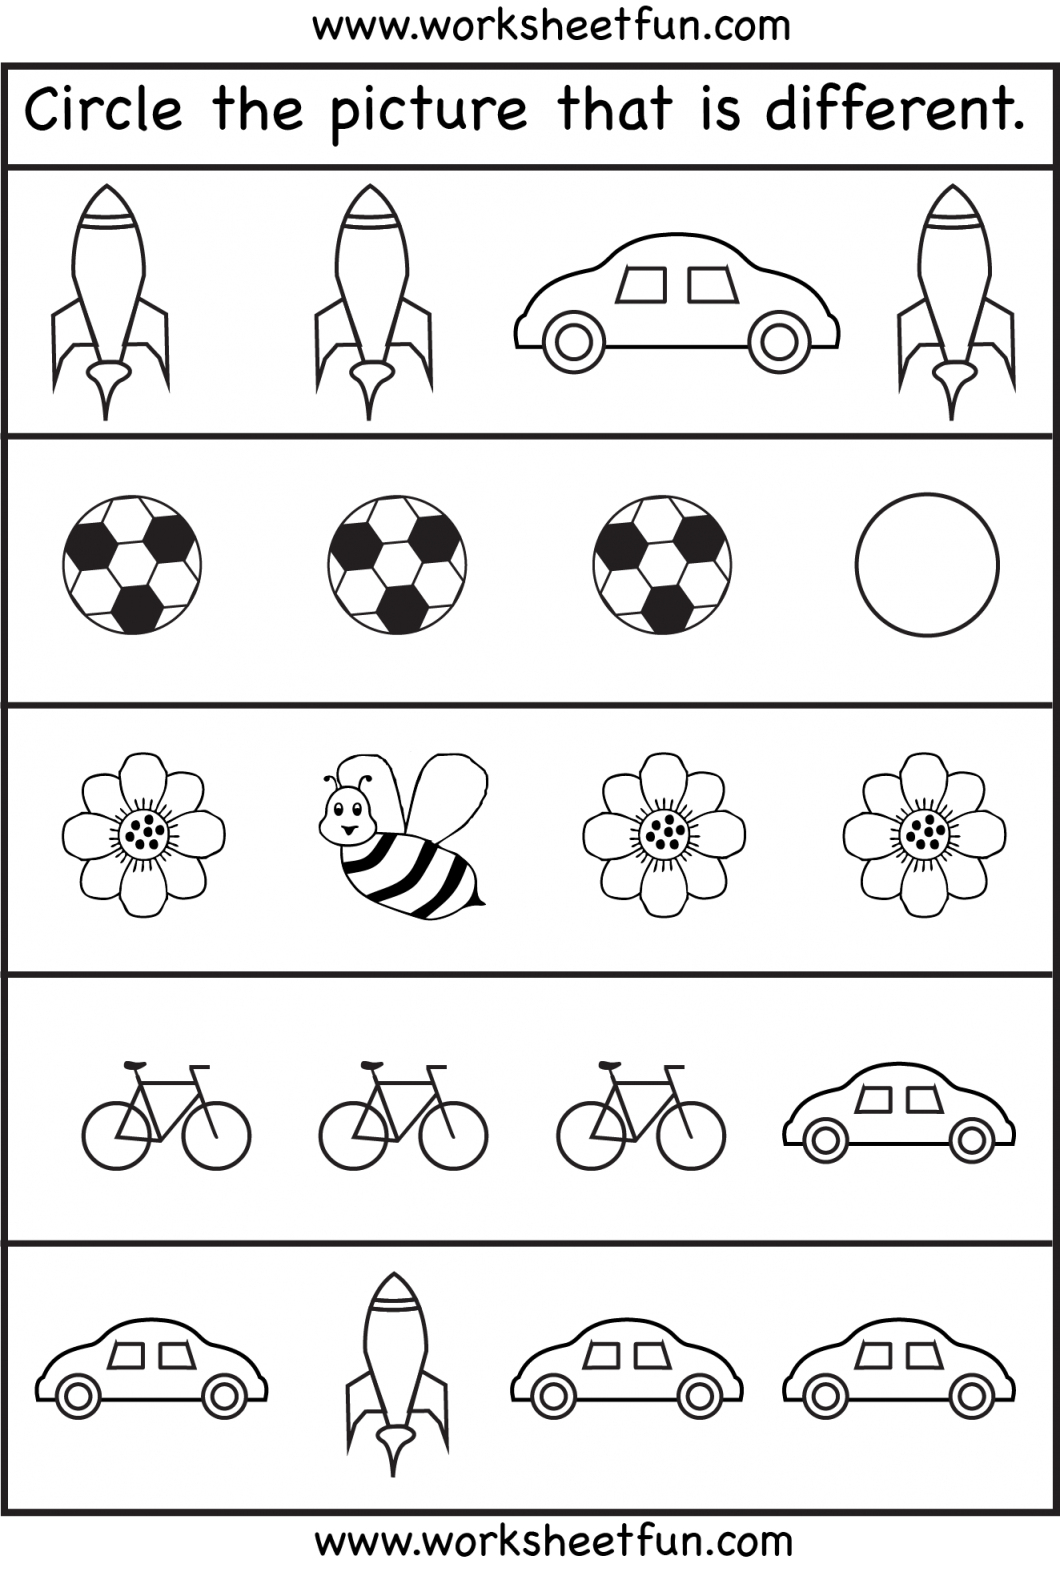 Toddler Activity Sheets – With Free Printable Activities For - Free Printable Activities For Kids